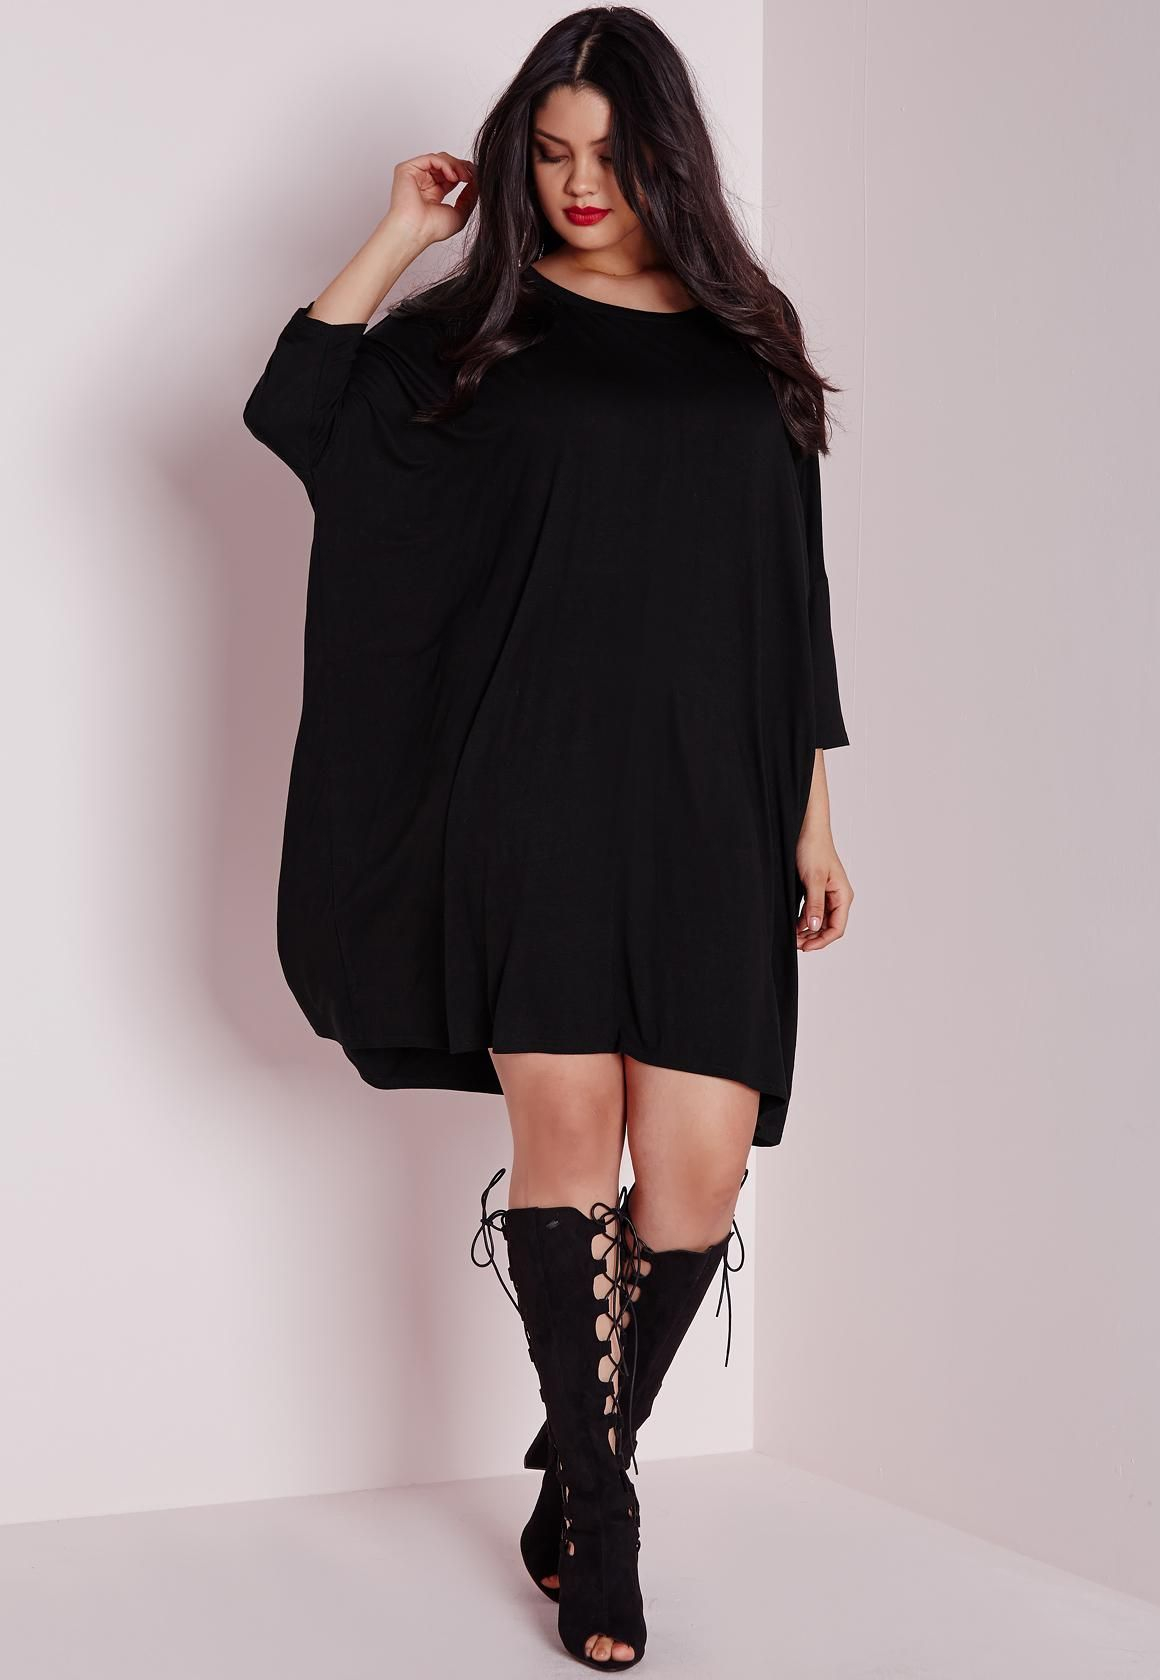 Black t shirt vest dress - Work Some Seriously Chic Day Cool Vibes With This Black T Shirt Dress In